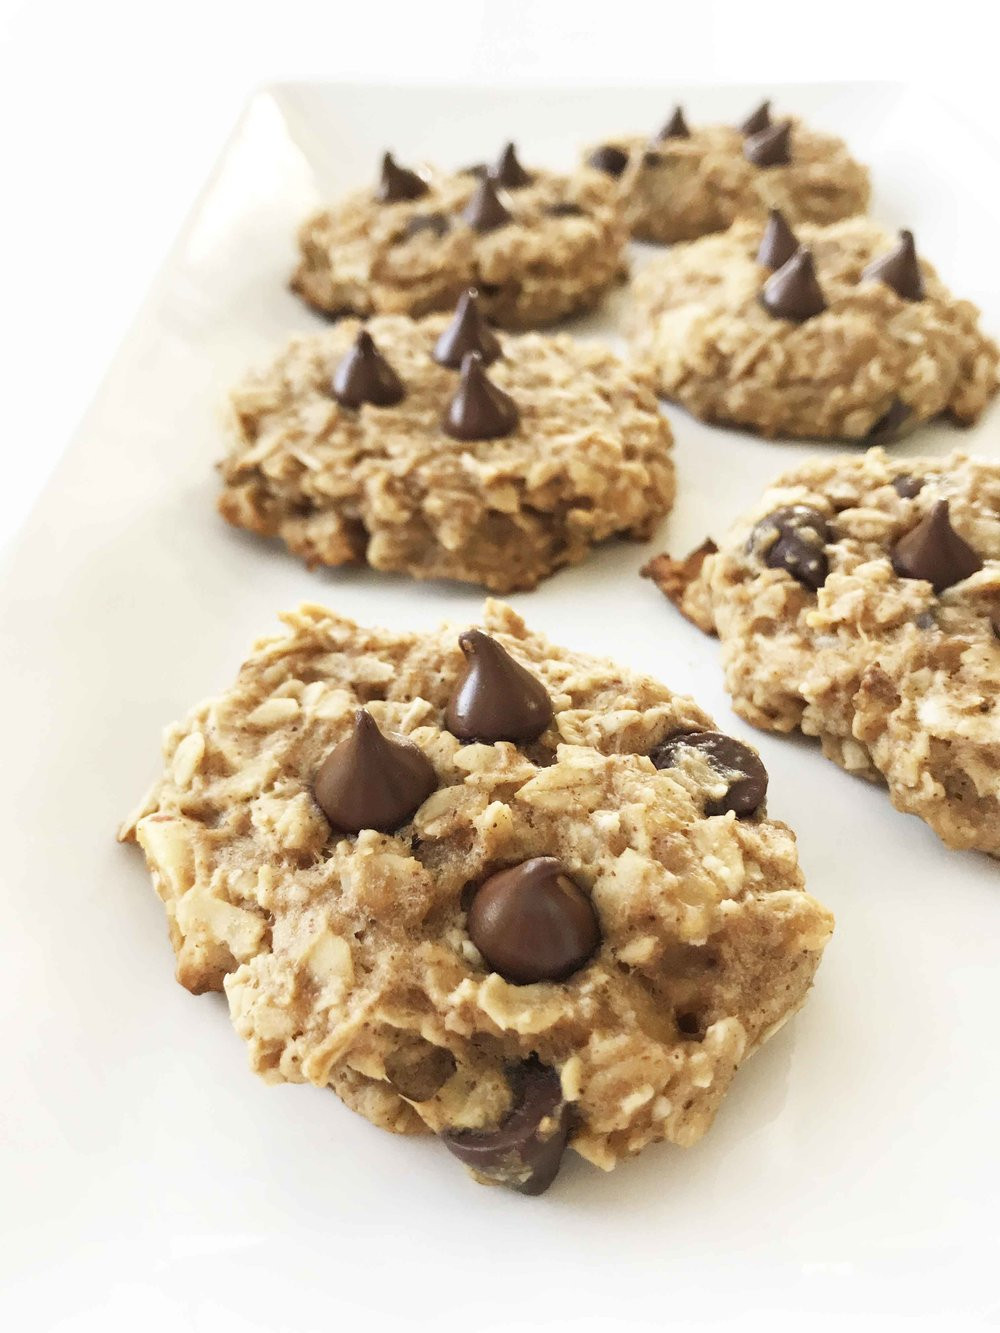 Healthy Peanut Butter Oatmeal Cookies  Healthy Peanut Butter Oatmeal Cookies — The Skinny Fork